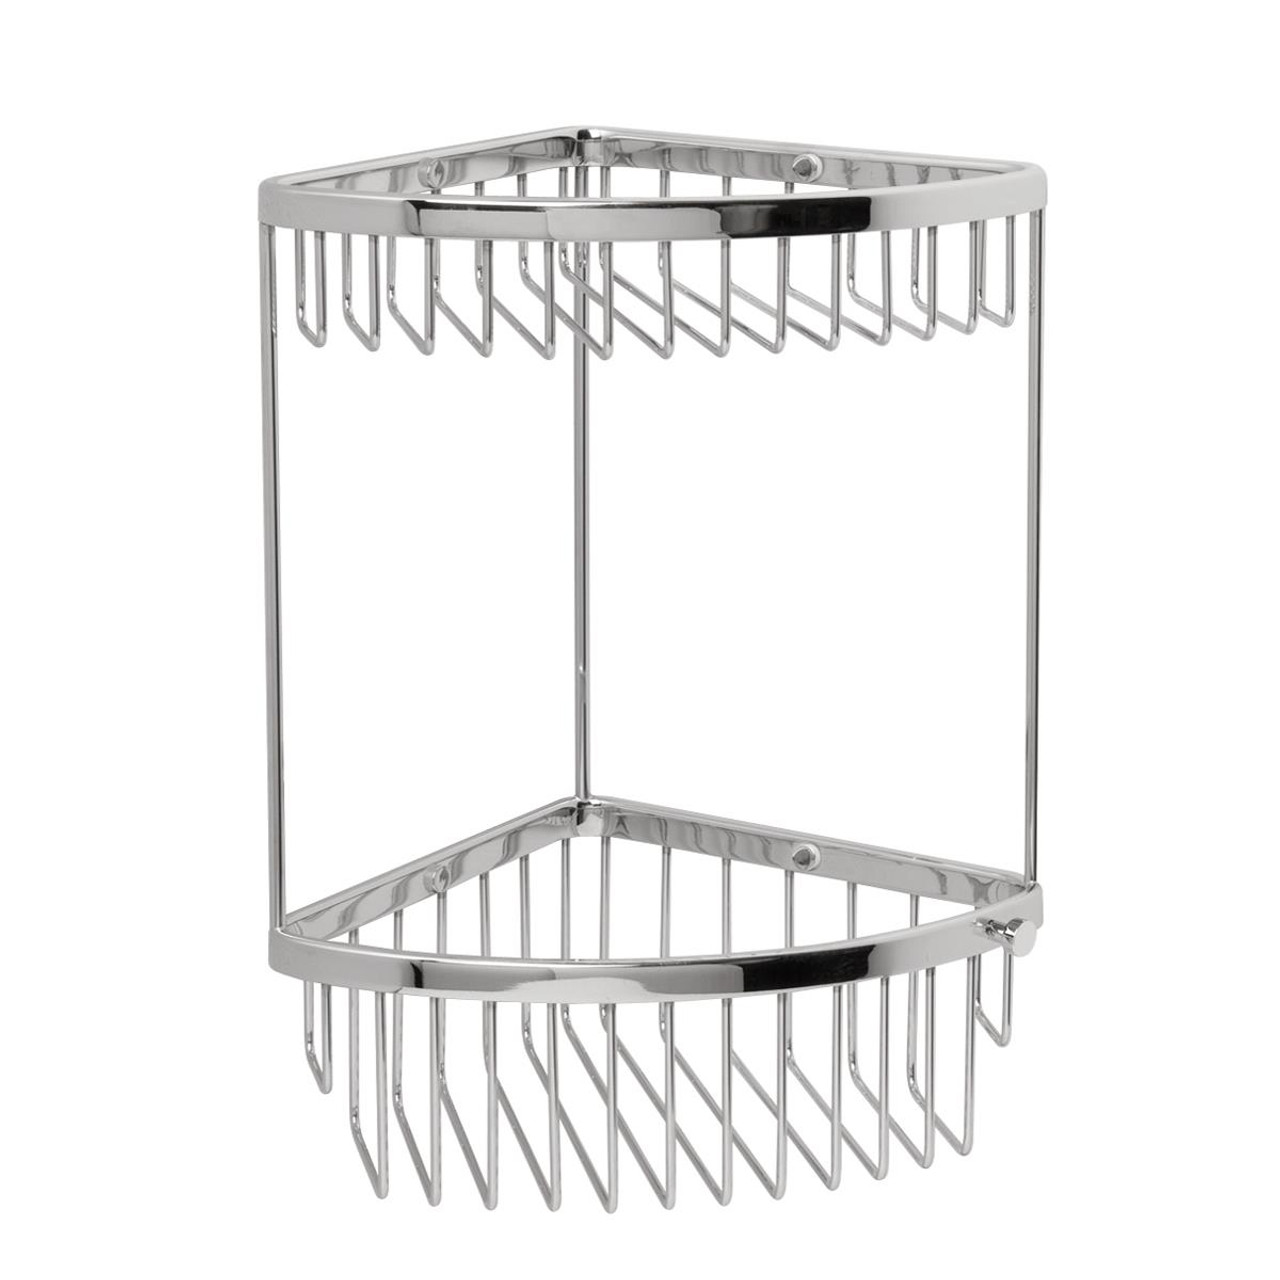 Miller Two Tier Classic Corner Basket With Hook